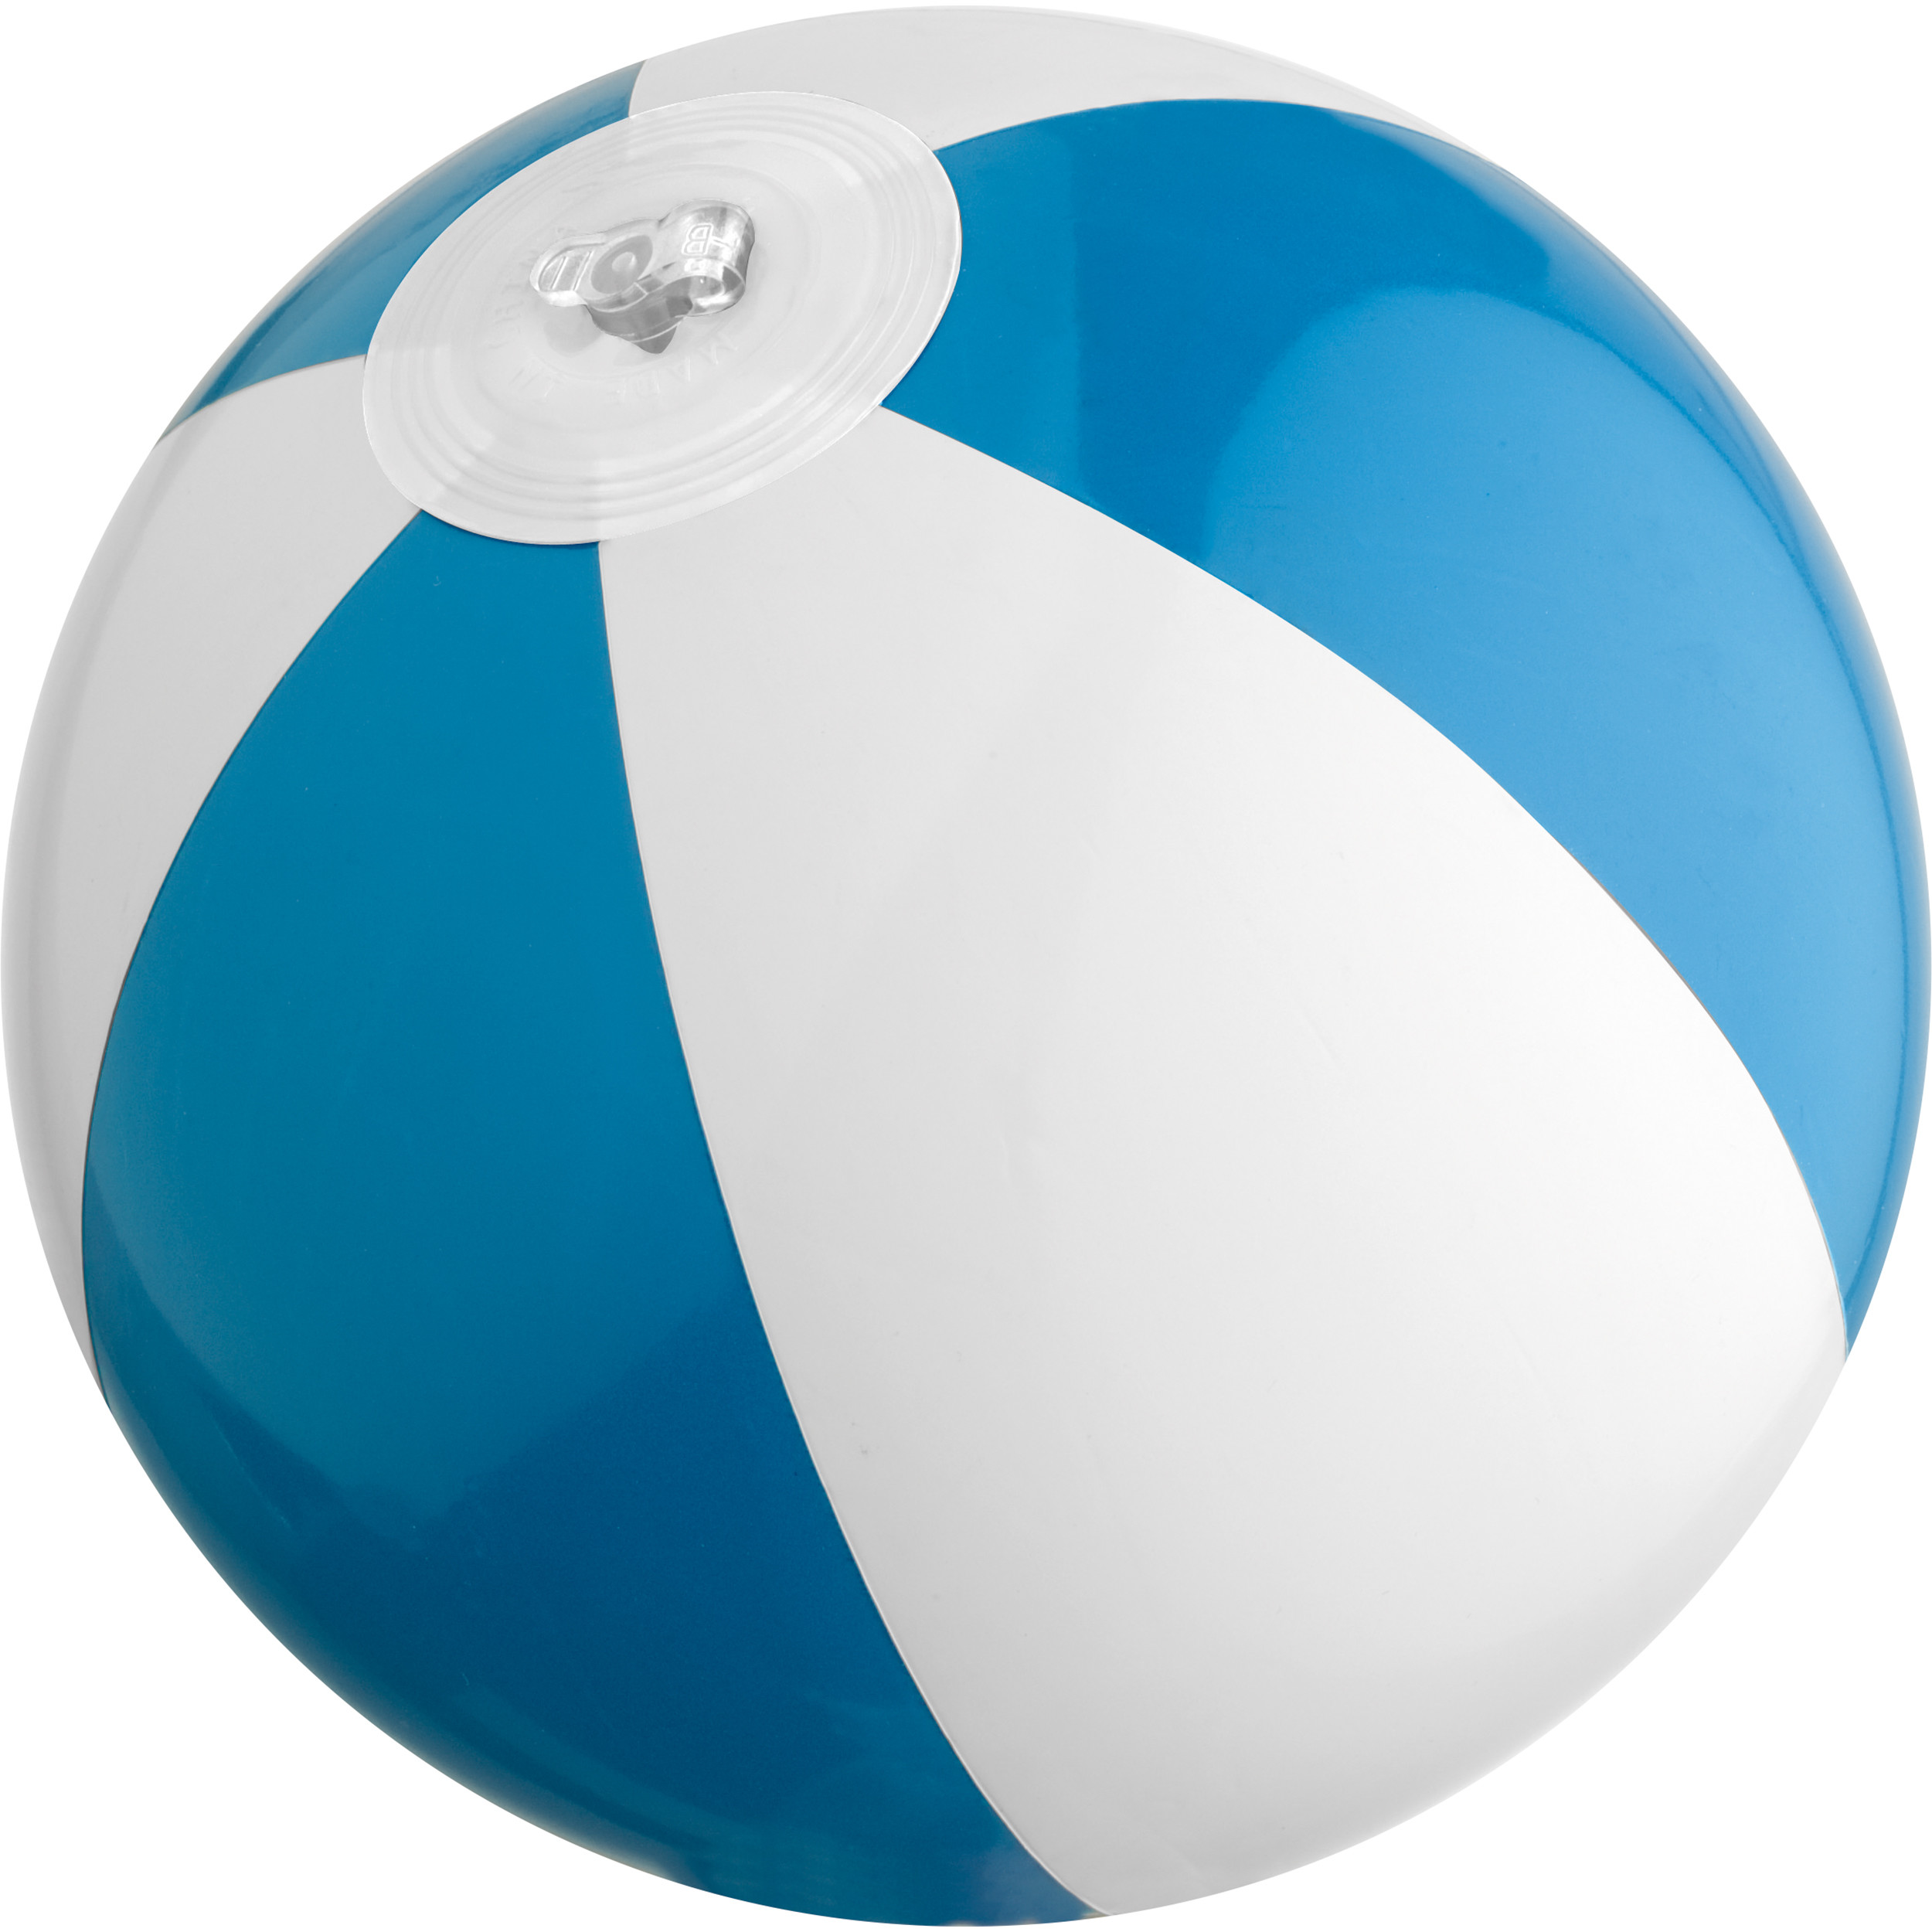 "Mini beach ball ""Acapulco"""